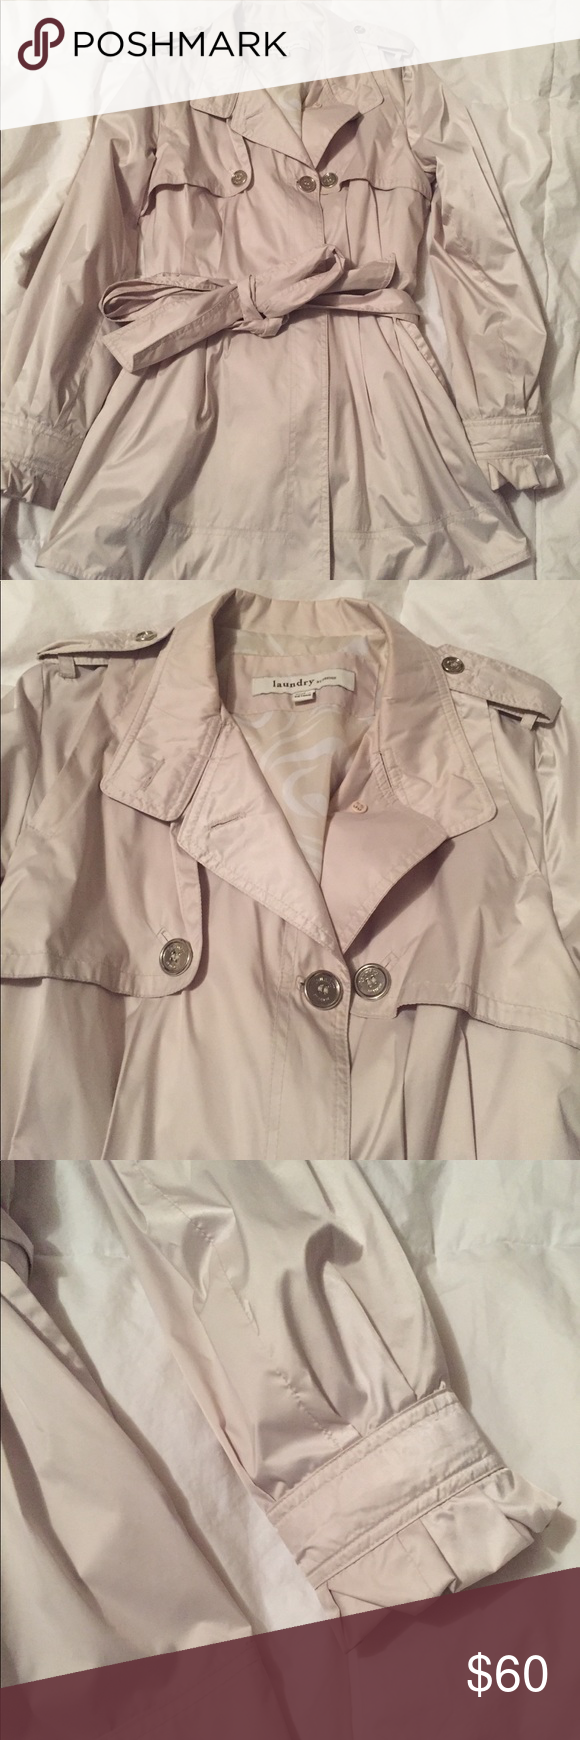 Laundry By Design Rain Coat Beautiful Laundry By Design Raincoat Cream Colored With Silver Buttons And Tie A Trench Coat Style Coat Fashion Short Trench Coat